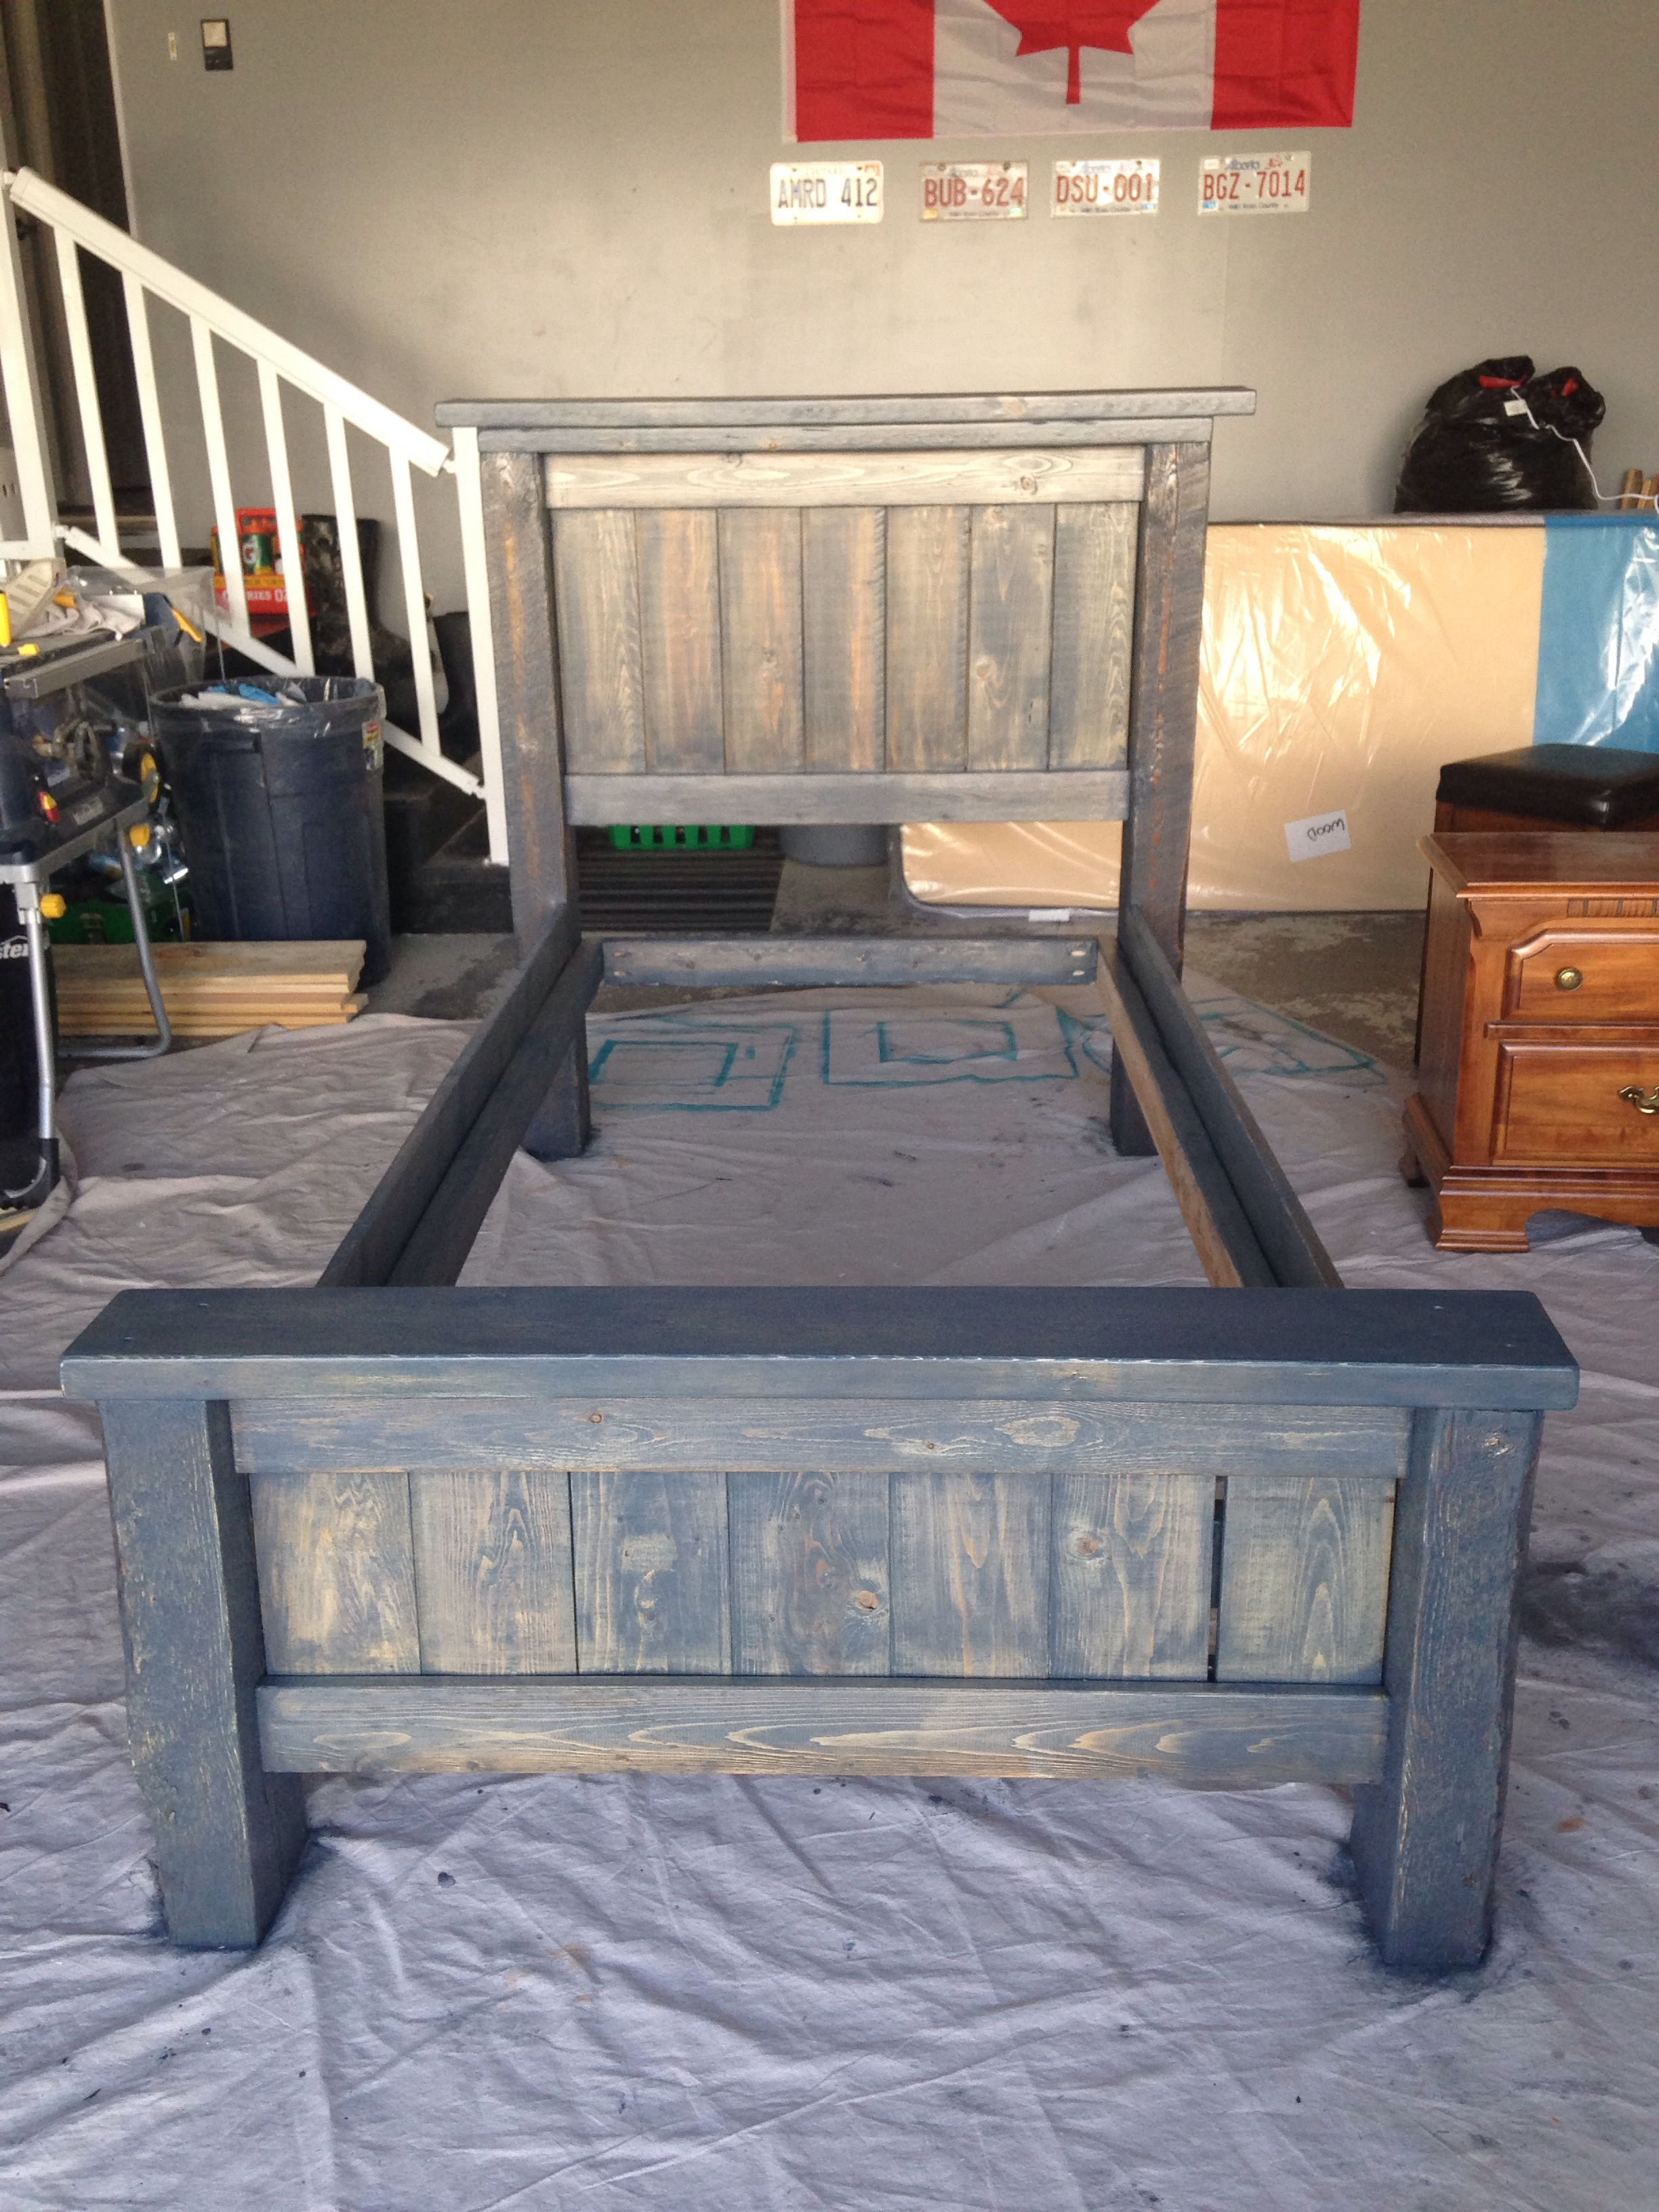 Diy Twin Bed Frame Plans From Anna White Stained In Minwax Charcoal Grey Total Cost For Project 80 Diy Twin Bed Frame Diy Twin Bed Twin Bed Frame